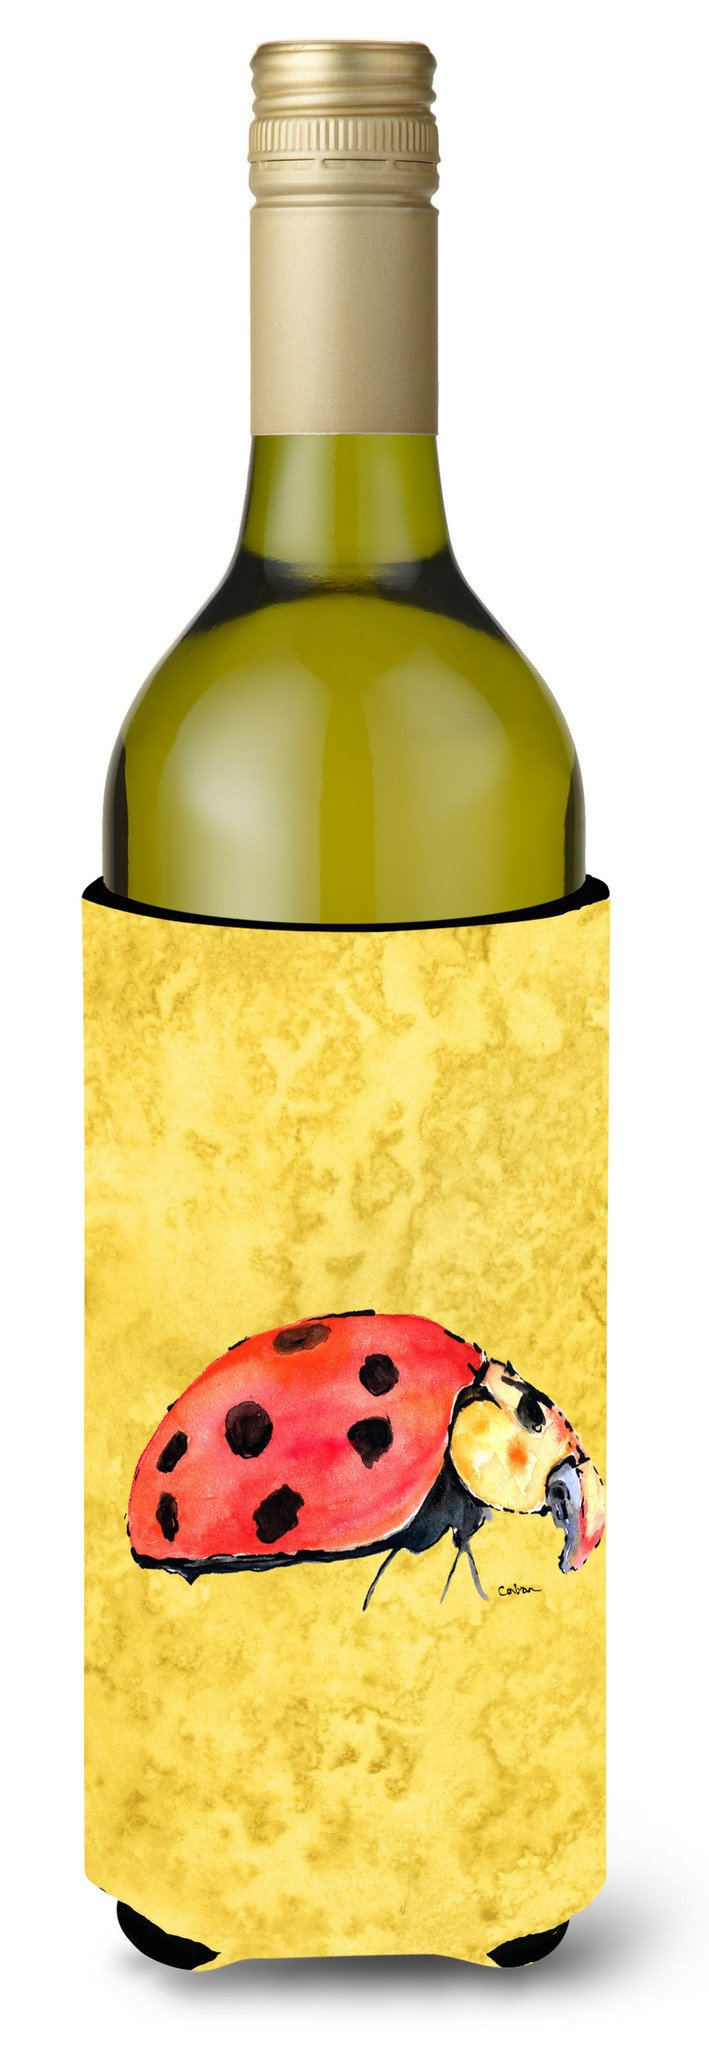 Lady Bug on Yellow Wine Bottle Beverage Insulator Beverage Insulator Hugger by Caroline's Treasures